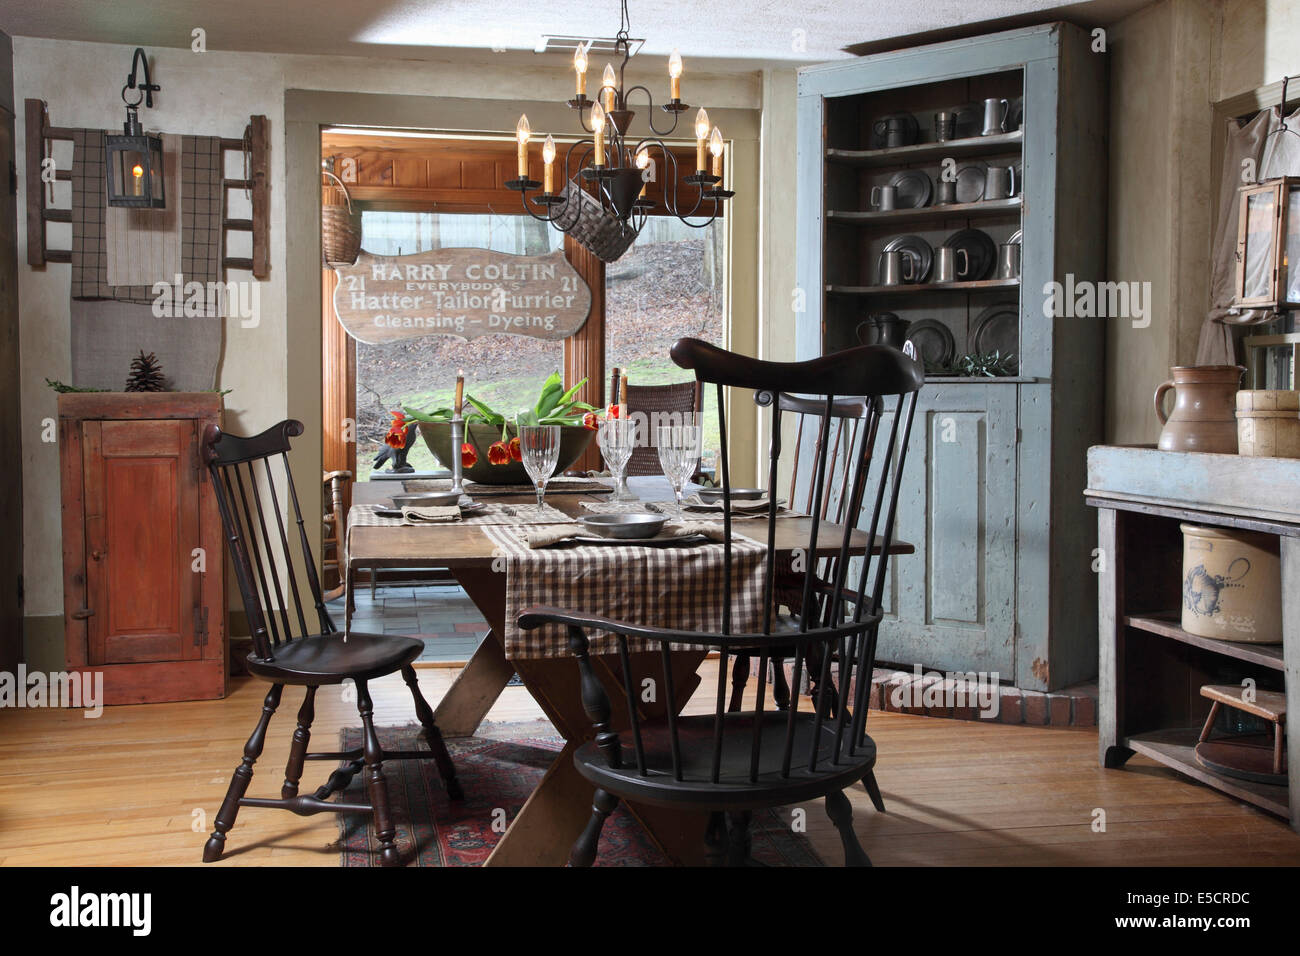 Rustic Style Dining Room With Corner Cabinet And Pewter Items, USA.